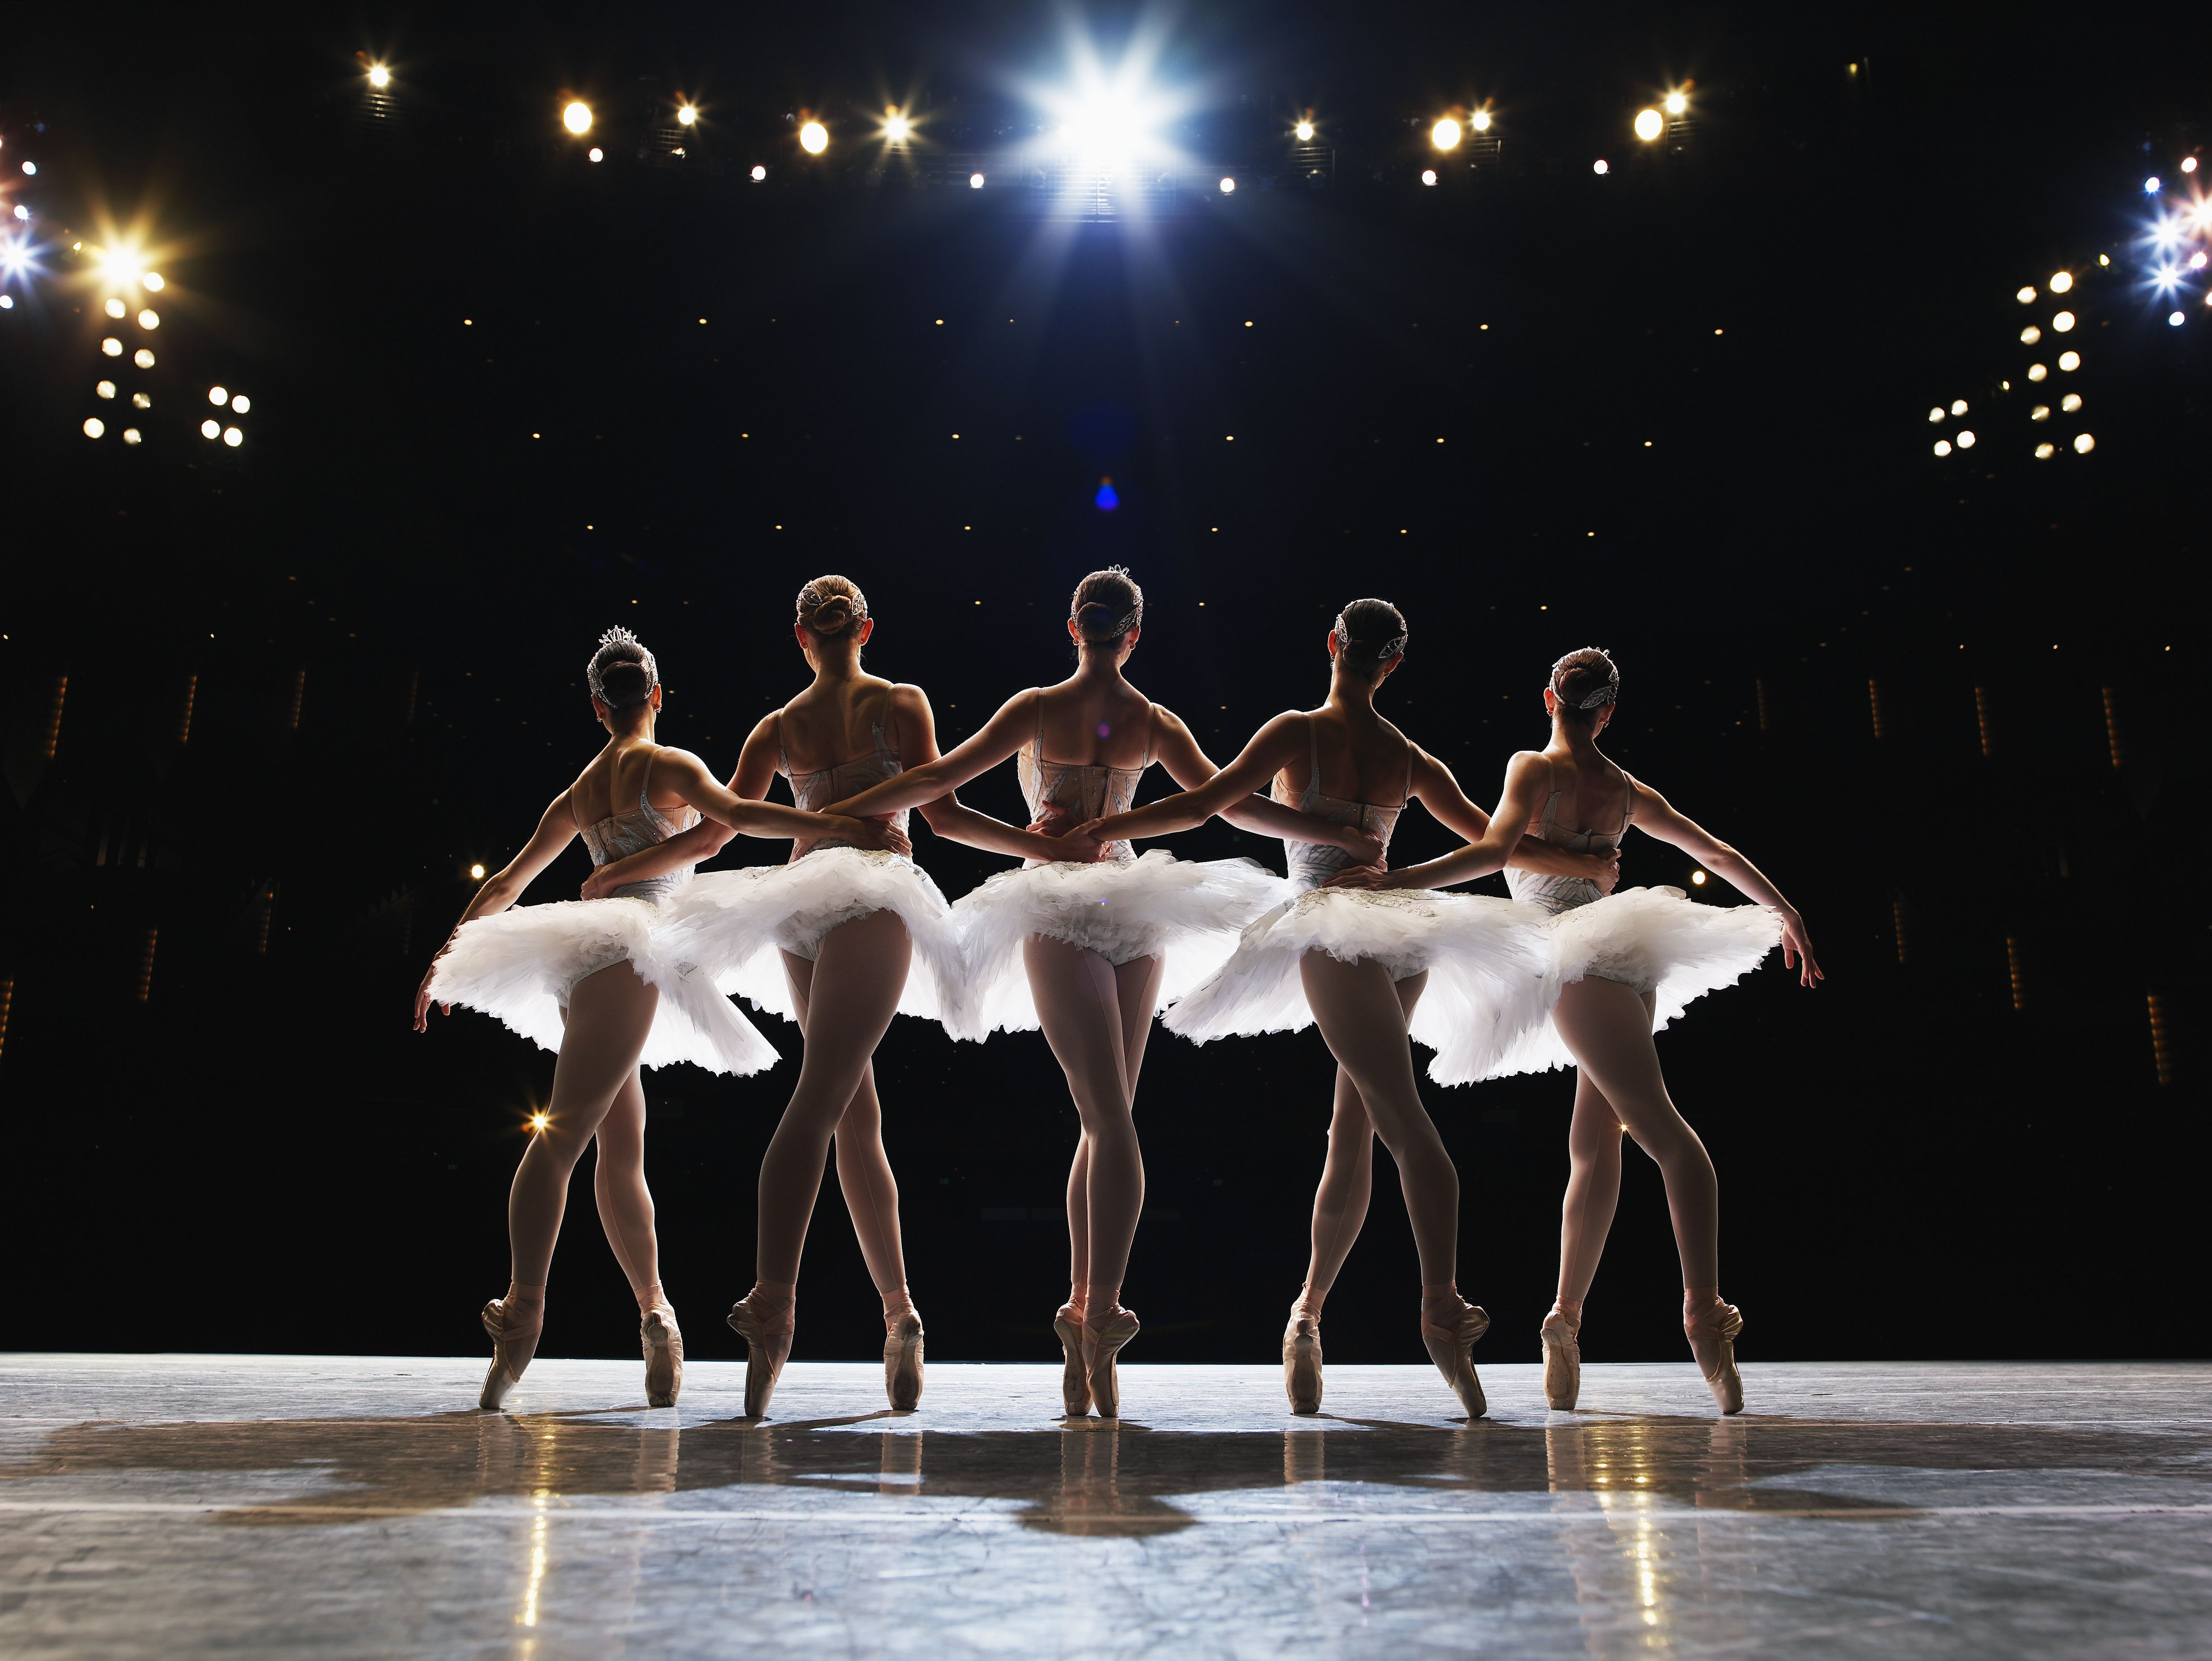 Five ballerinas en pointe on stage, arms around each other, rear view